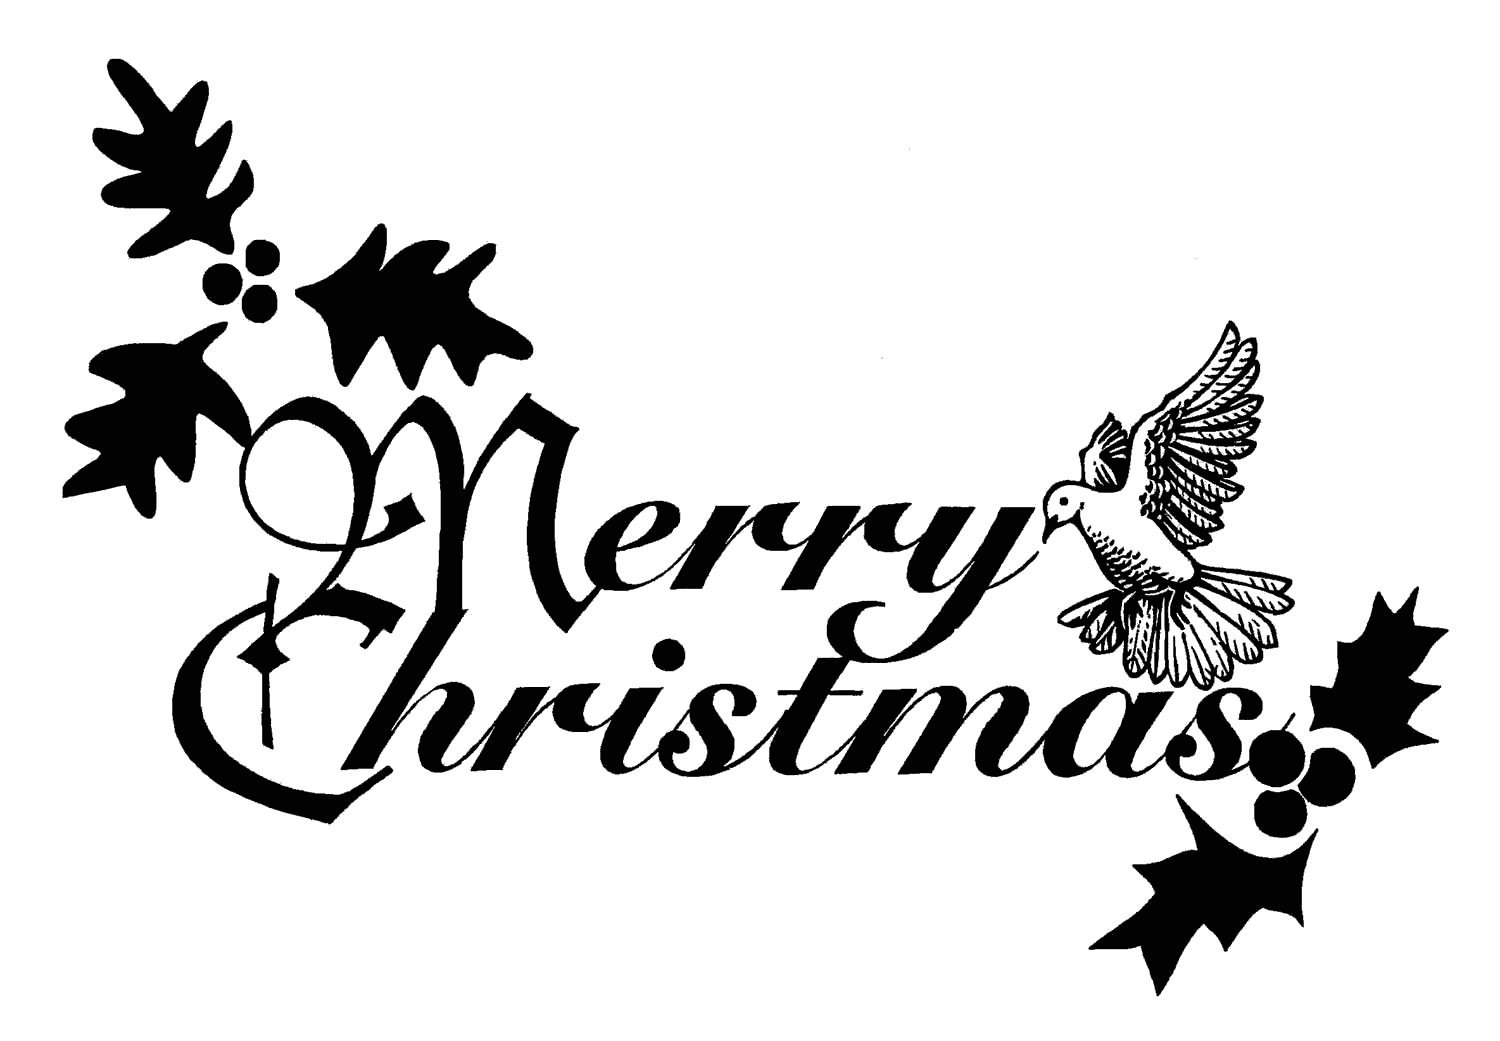 Merry christmas religious clipart graphic black and white download Christian Merry Christmas Clipart | Clipart Panda - Free Clipart Images graphic black and white download